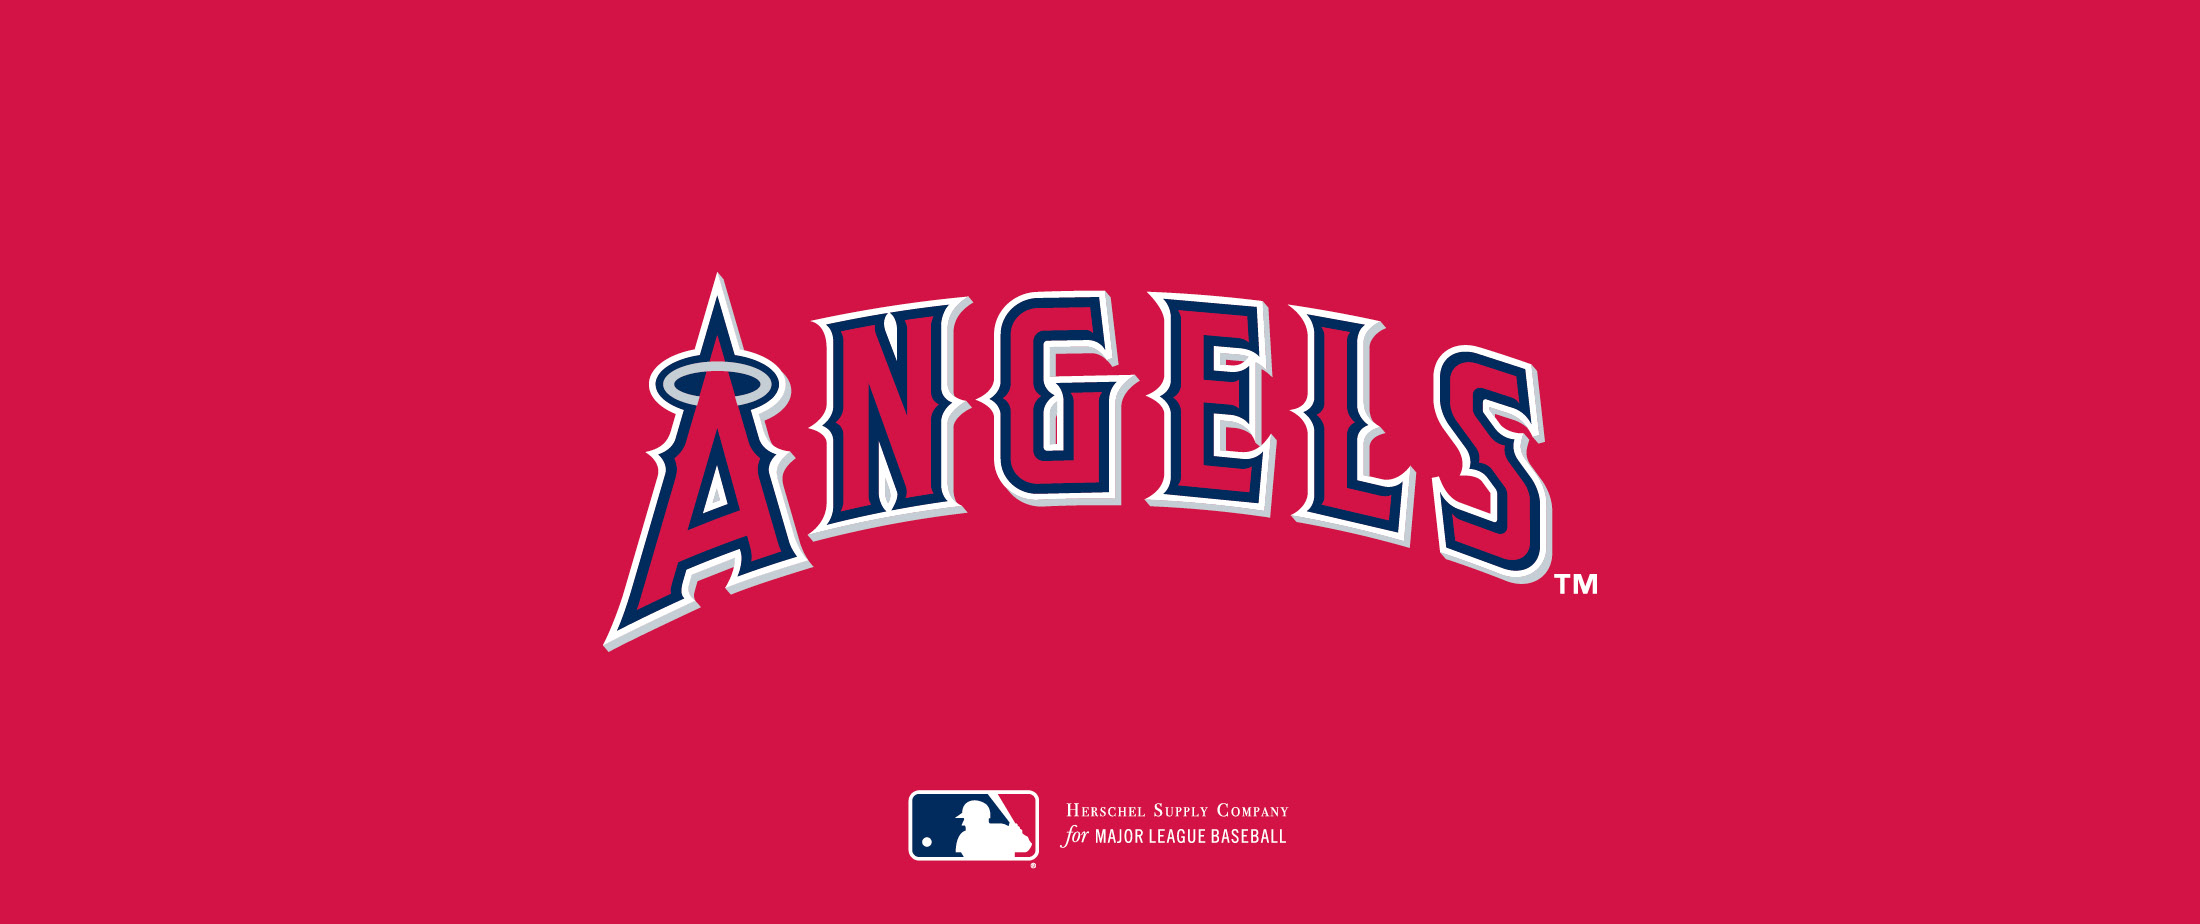 Los Angeles Angels Herschel Supply Co